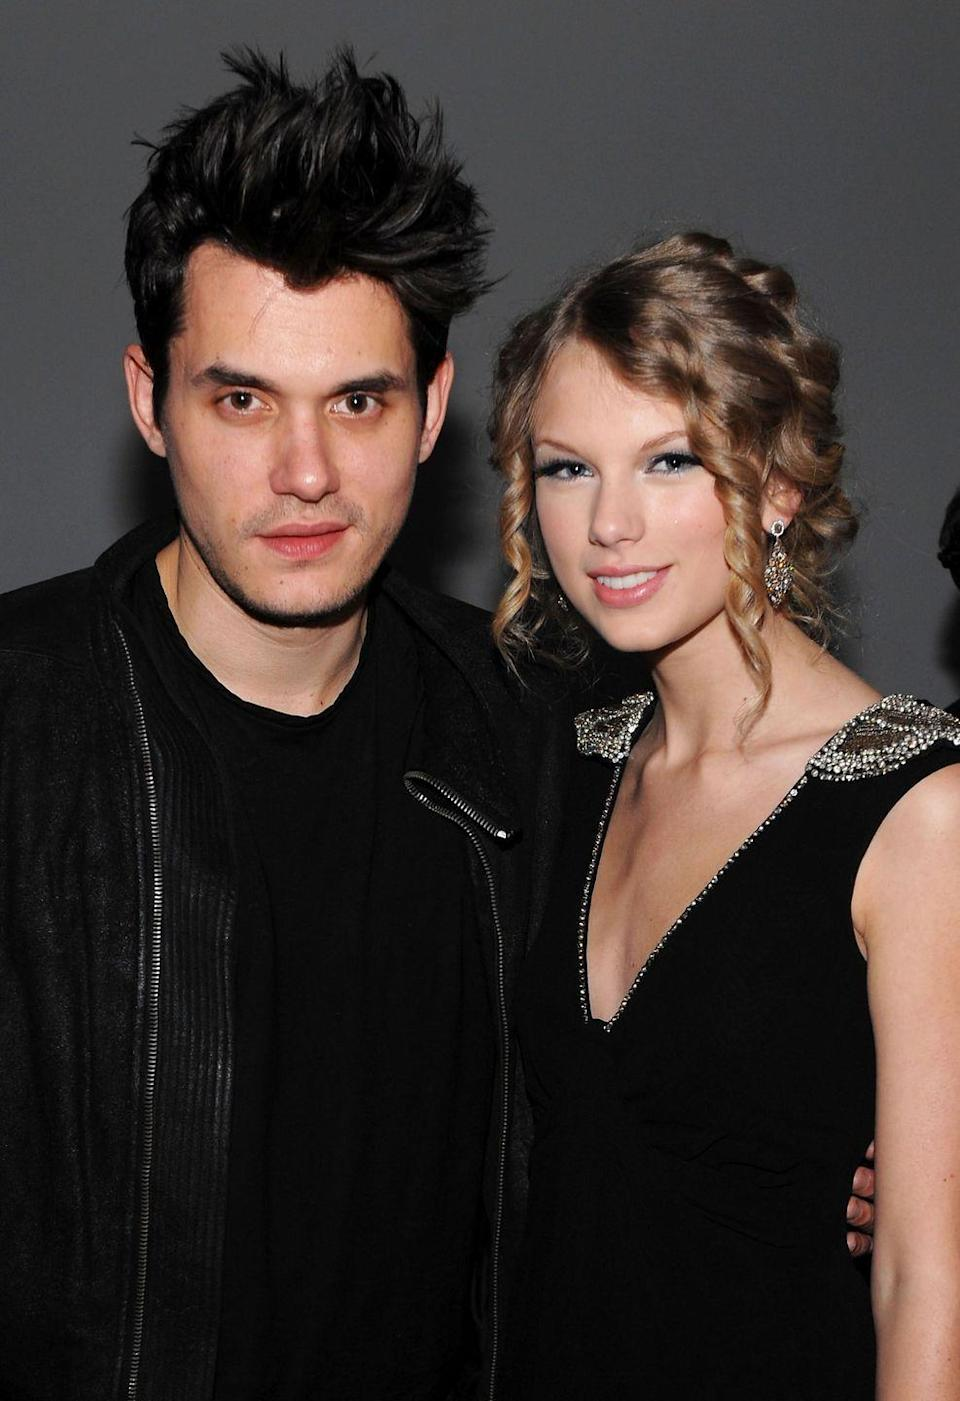 <p>Years after their relationship, which Taylor detailed in the 2012 song, 'Dear John,' John received some unwanted attention for tweeting on Dec. 13, 2016. If you've been a lifelong Swiftie, you know that is the holiest day of the year, as it's Taylor's birthday. </p><p>So when John called it the 'lamest day of the year' in 2016, all hell broke loose. Approximately 10 minutes later, he took the tweet down and cleared the air: 'NOPE. No. Nuh-uh. People I am 39. I am deleting those tweets. Come right at me for doing so. Absolutely no shade.' OK there, John.</p>